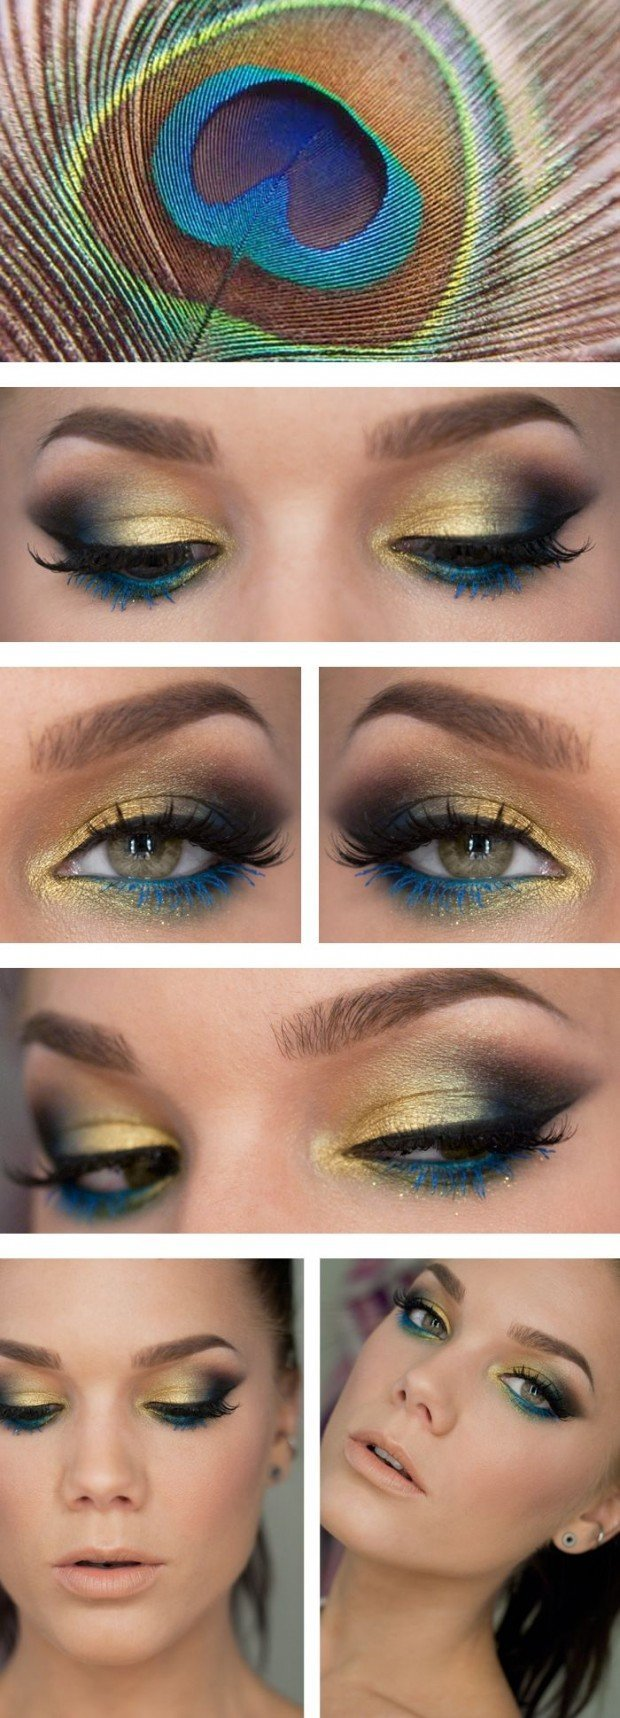 Colourfull Eye makeup Tutorials